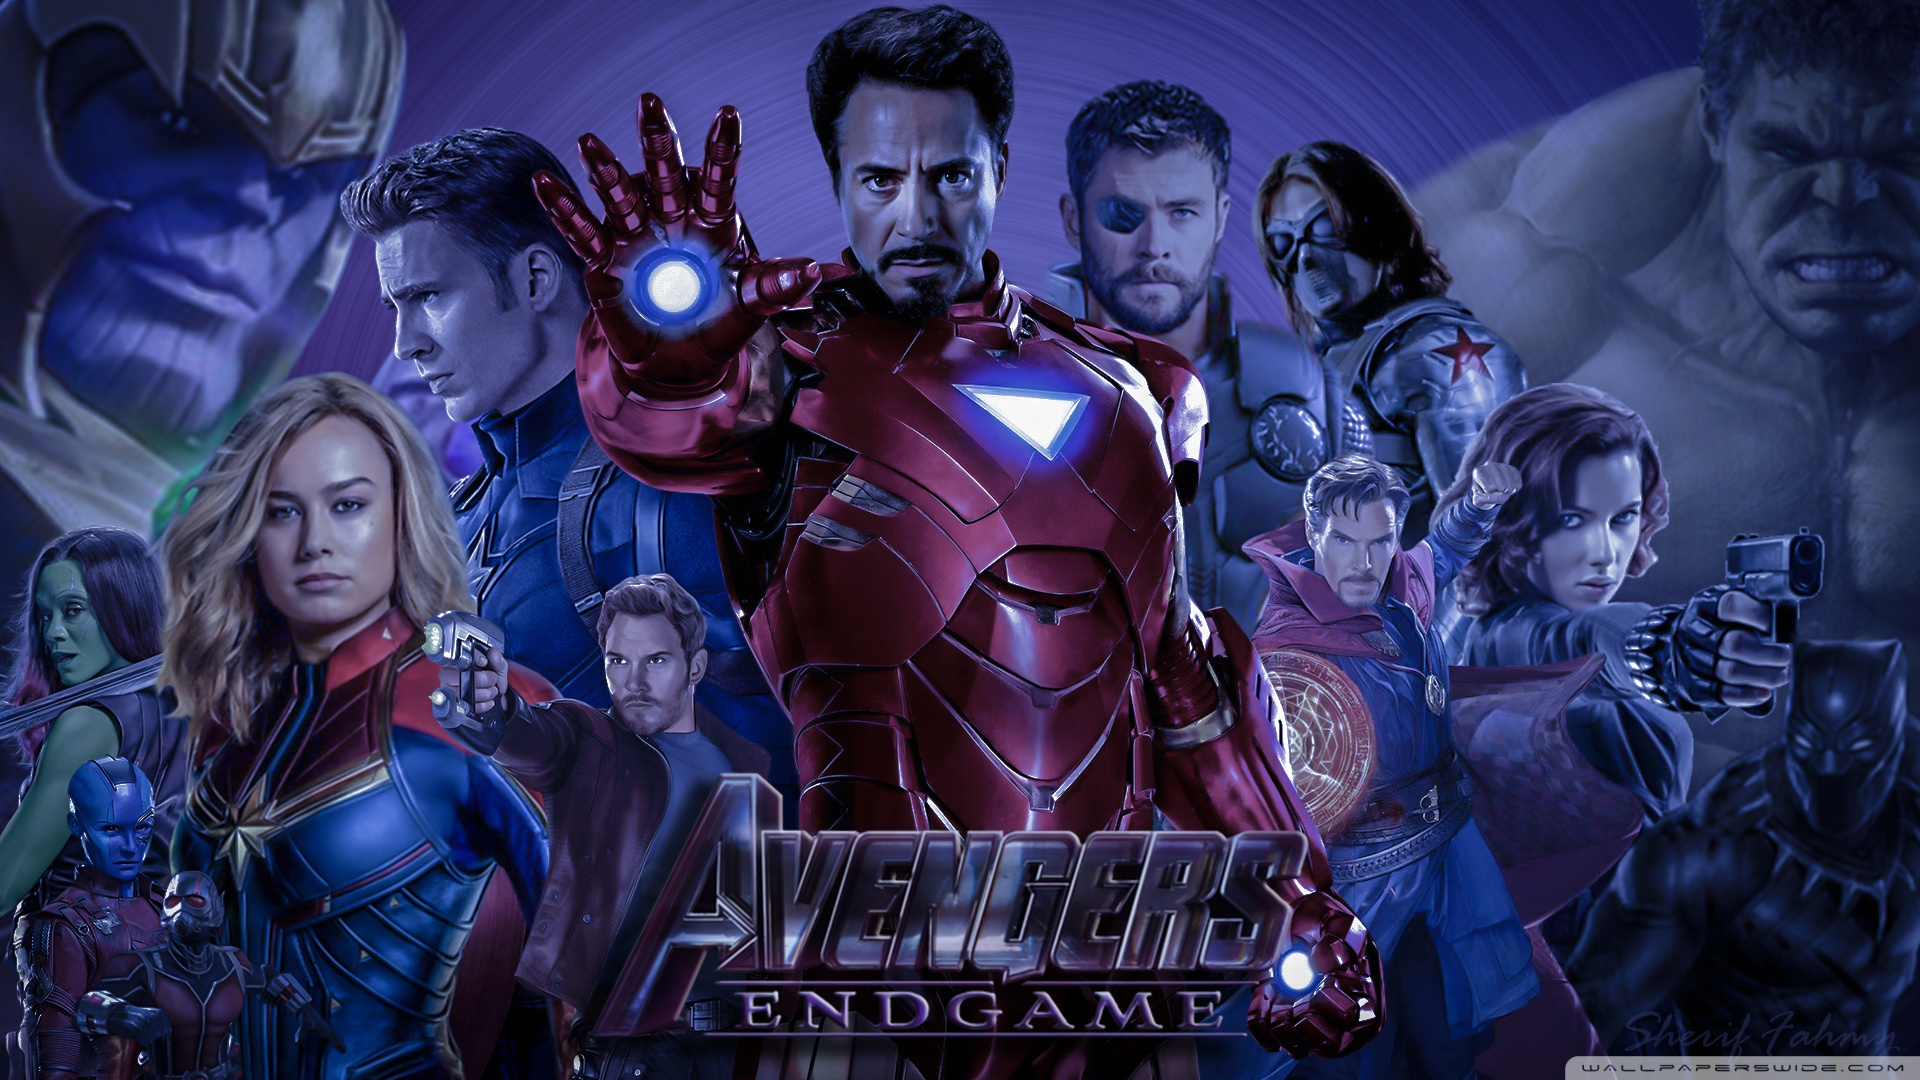 Avengers Endgame Wallpaper Posted By Ryan Thompson